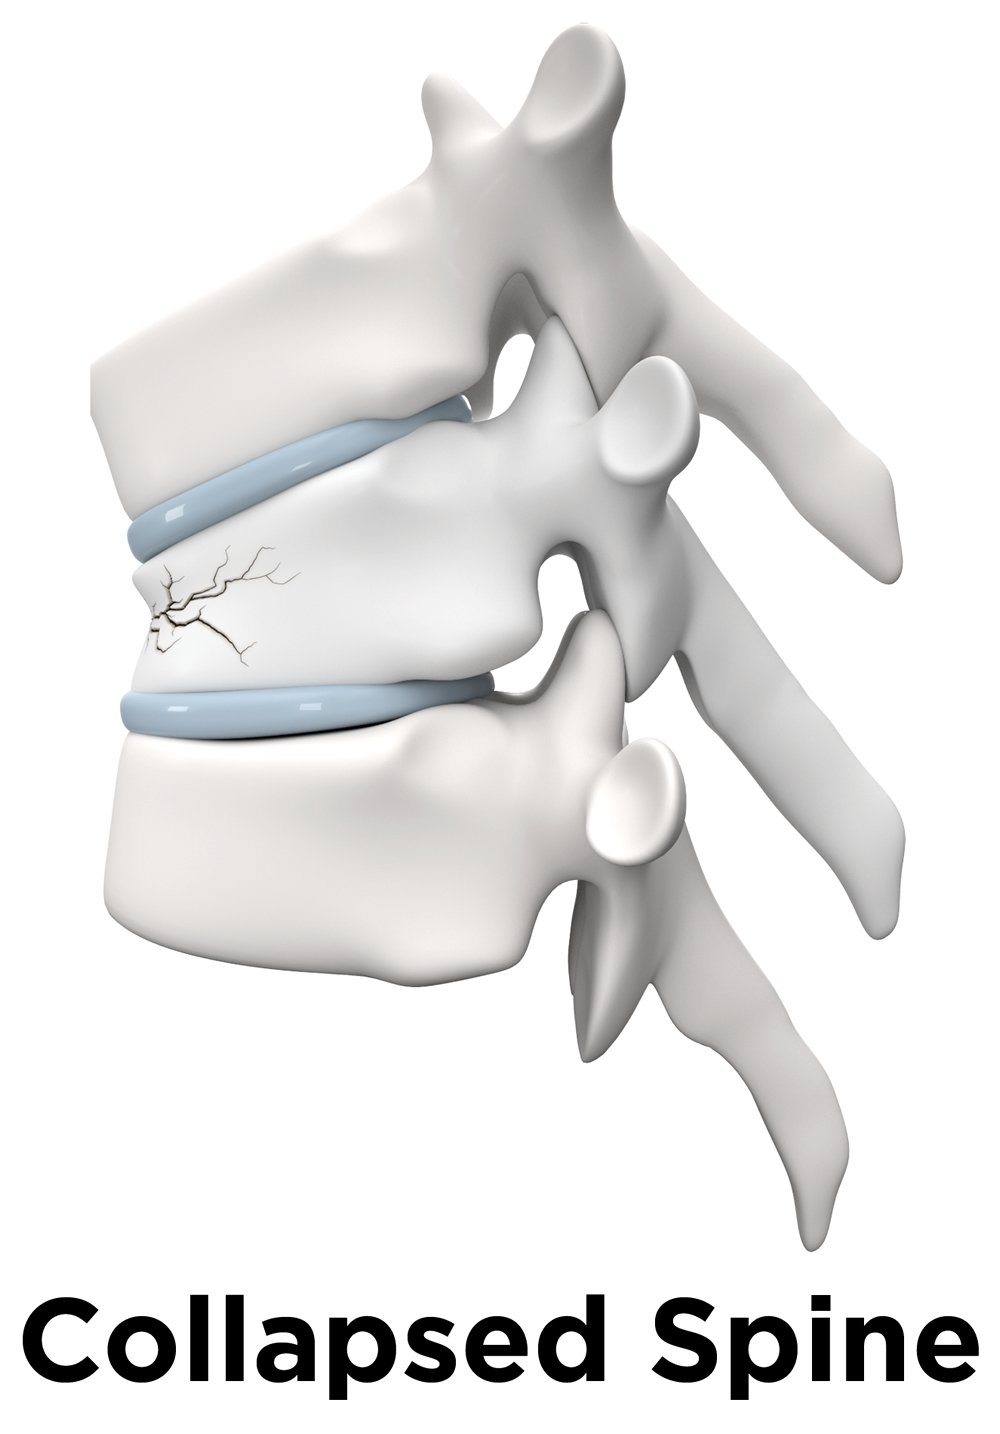 Collapsed Spine